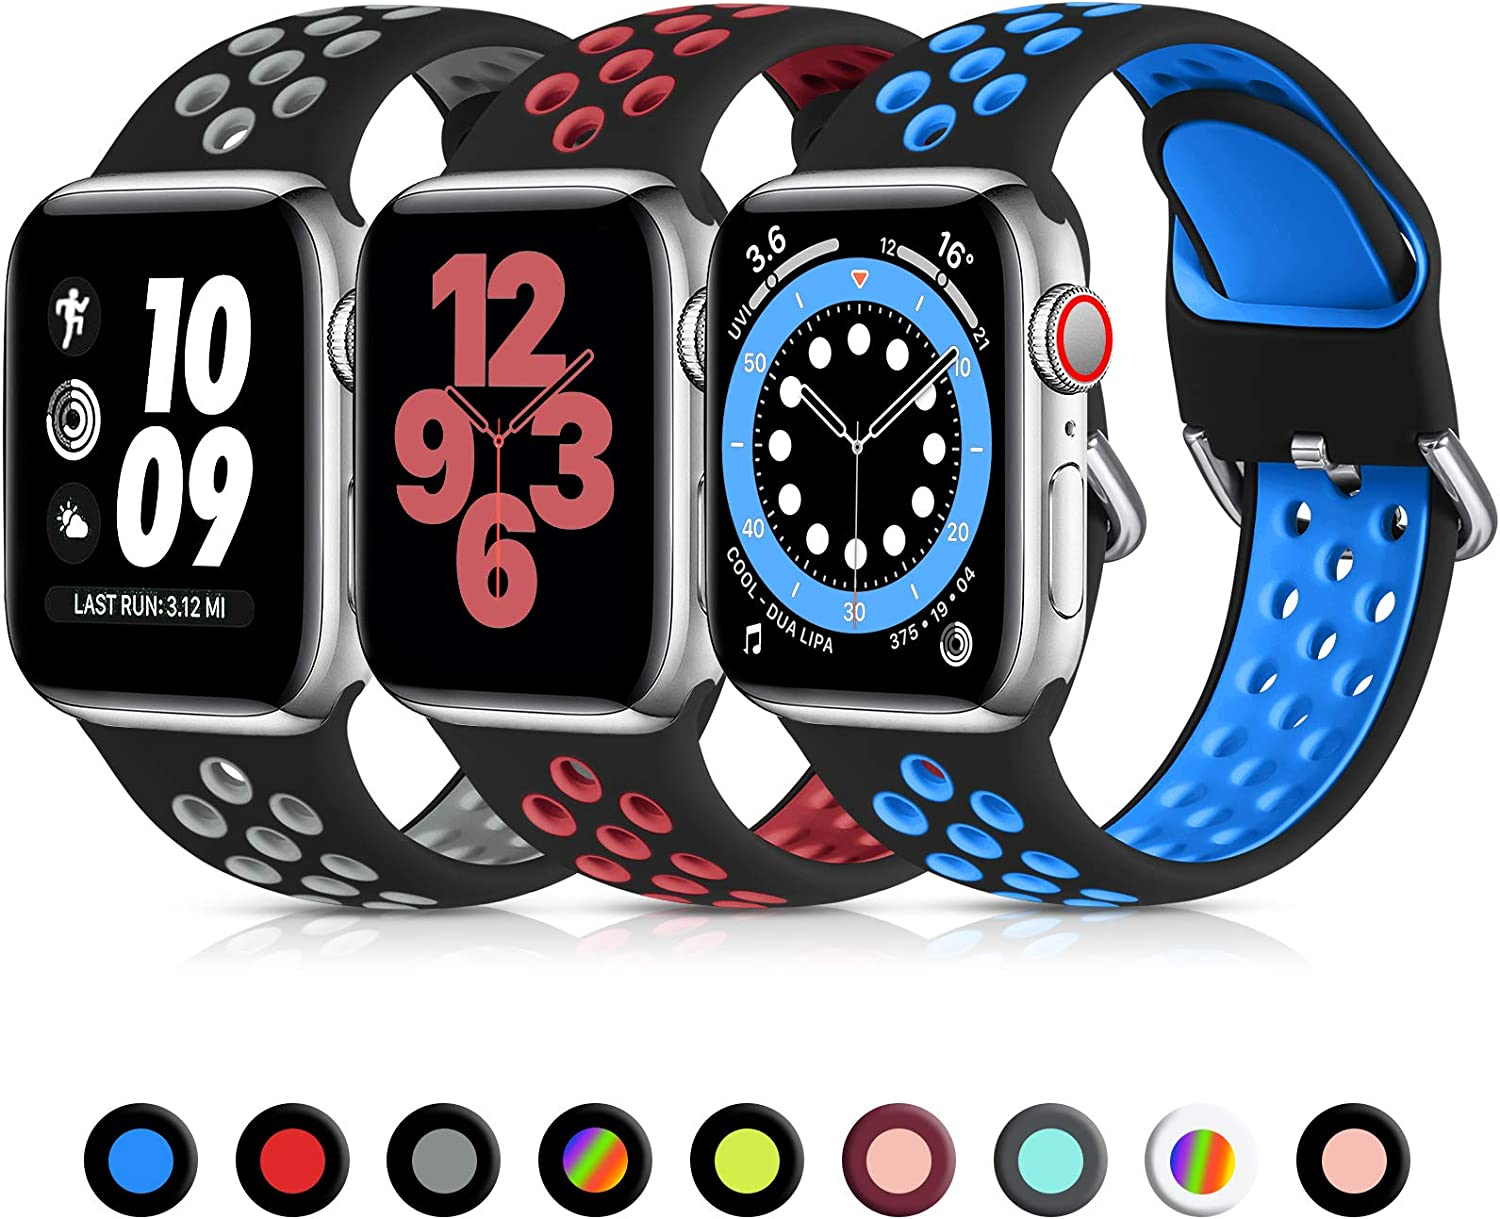 Lerobo 3 Pack Compatible for Apple Watch Bands 40mm 38mm 44mm 42mm, Soft Silicone Sport Strap Breathable Replacement Band for Apple Watch SE iWatch Series 6, Series 5 4 3 2 1 Women Men, 38mm/40mm-S/M